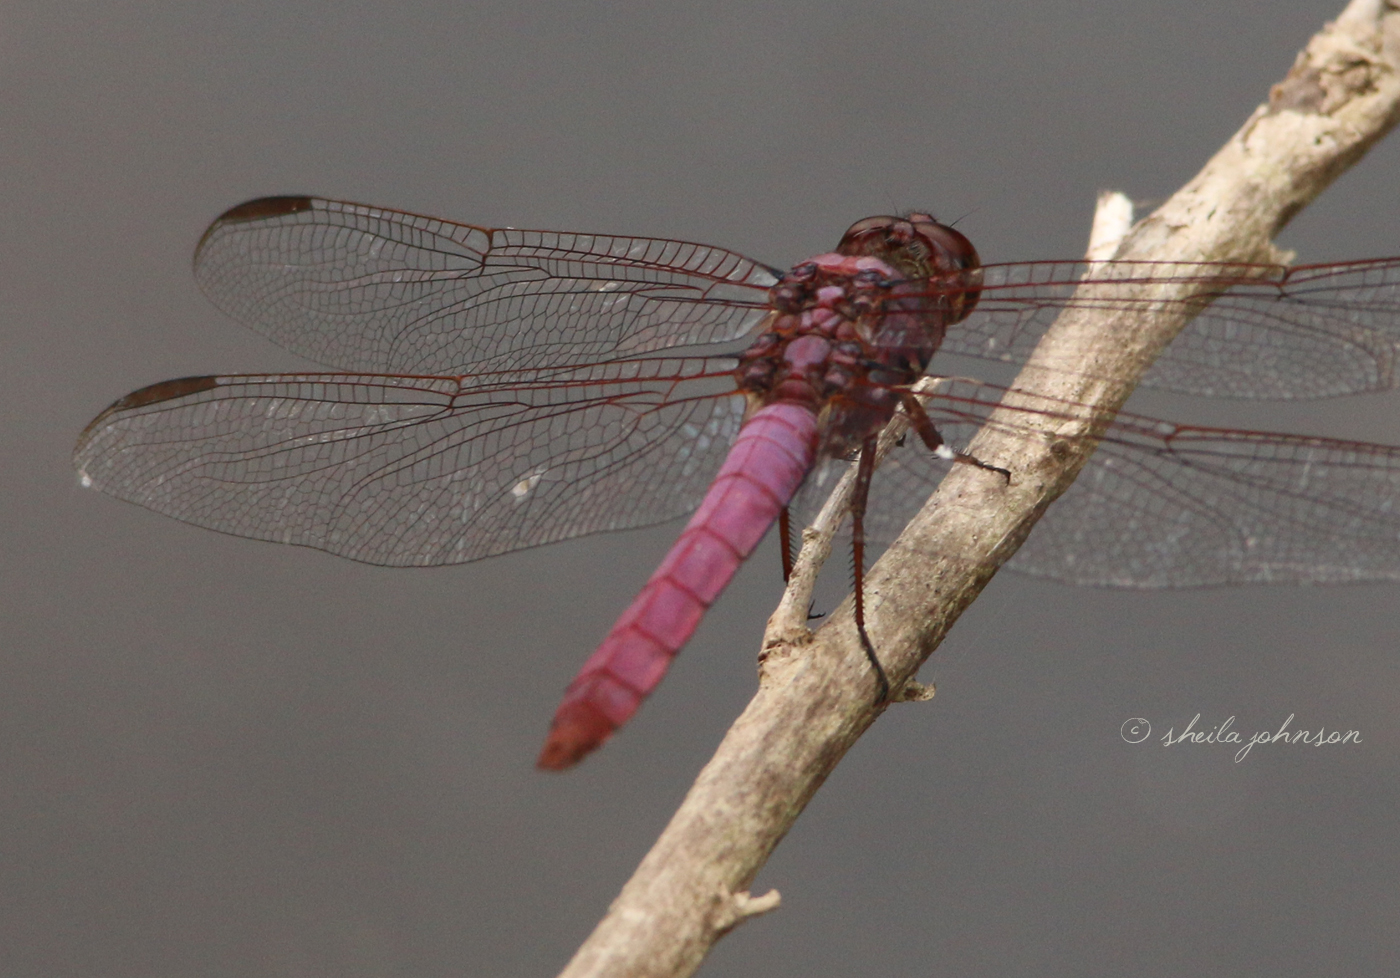 The Roseate Skimmer Dragonfly Is One Of The Prettiest We've Seen In The Wild. One Would Think 'roseate,' As In Spoonbill, Would Mean Pink. These Are Pretty Shades Of Purple, However.